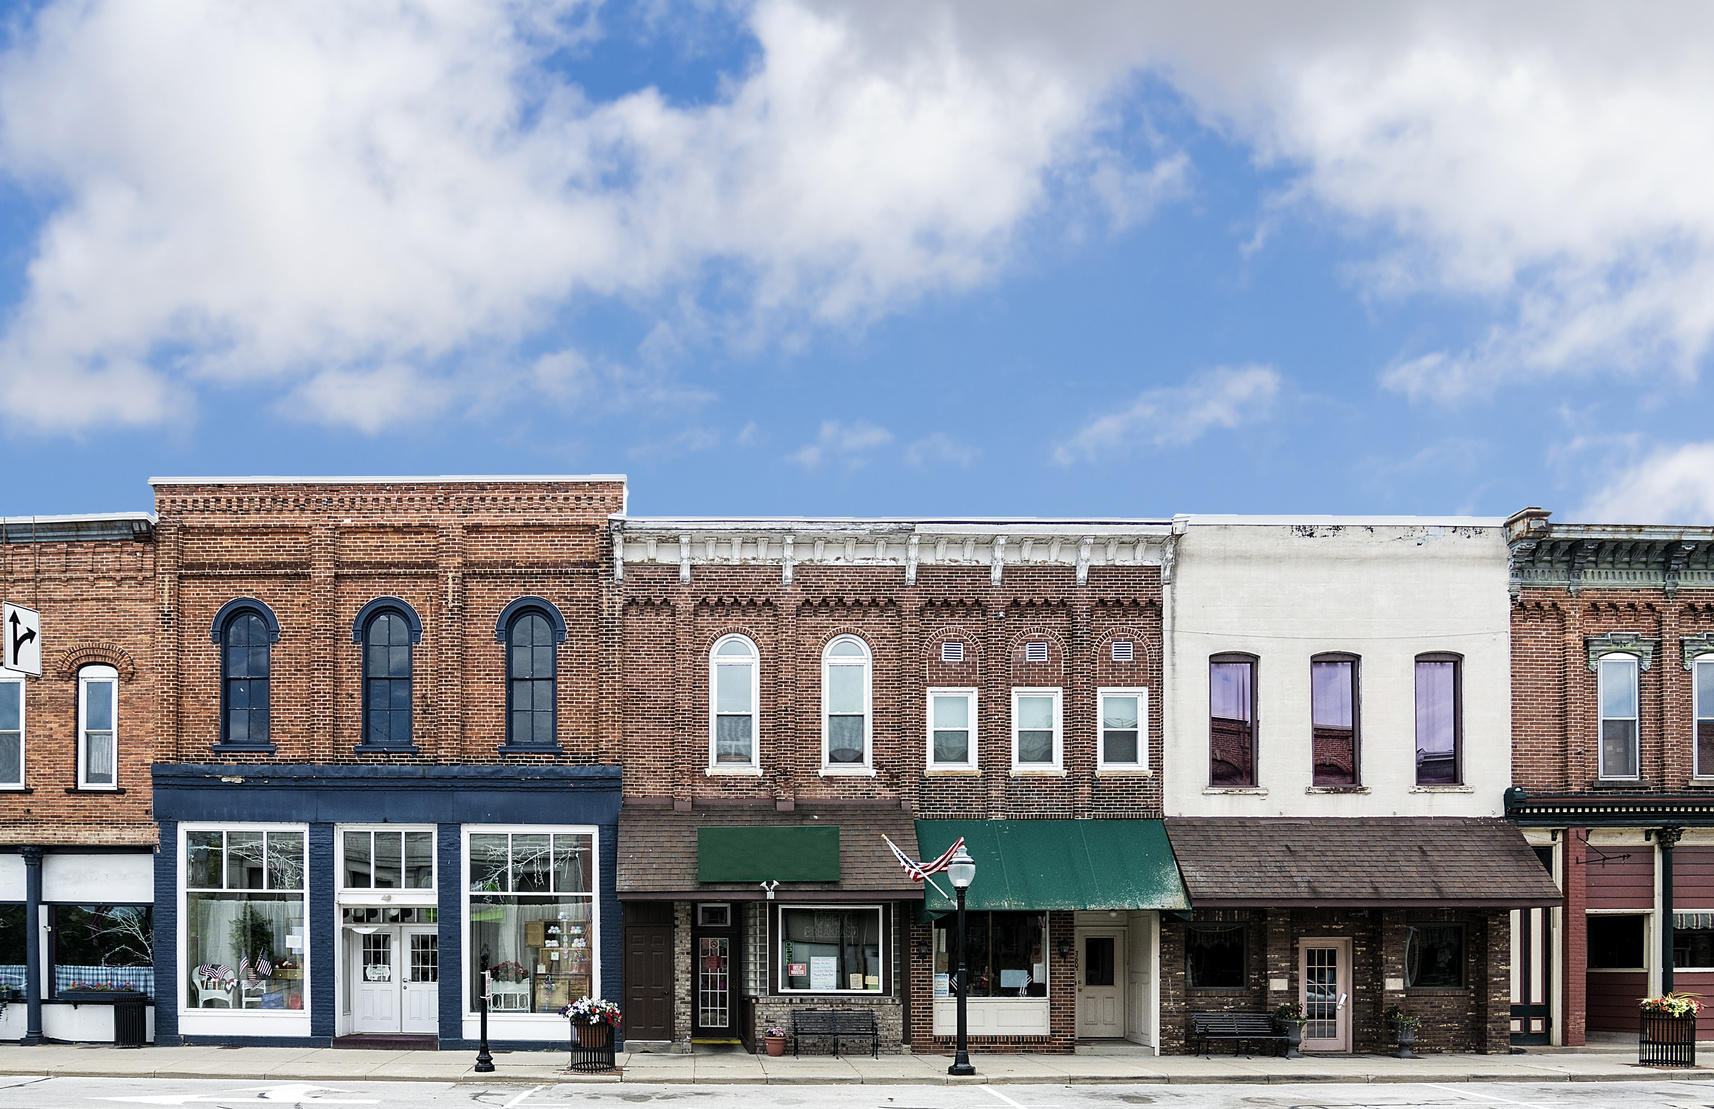 essay u s presidential politics reflects our wider society for essay in praise of small towns